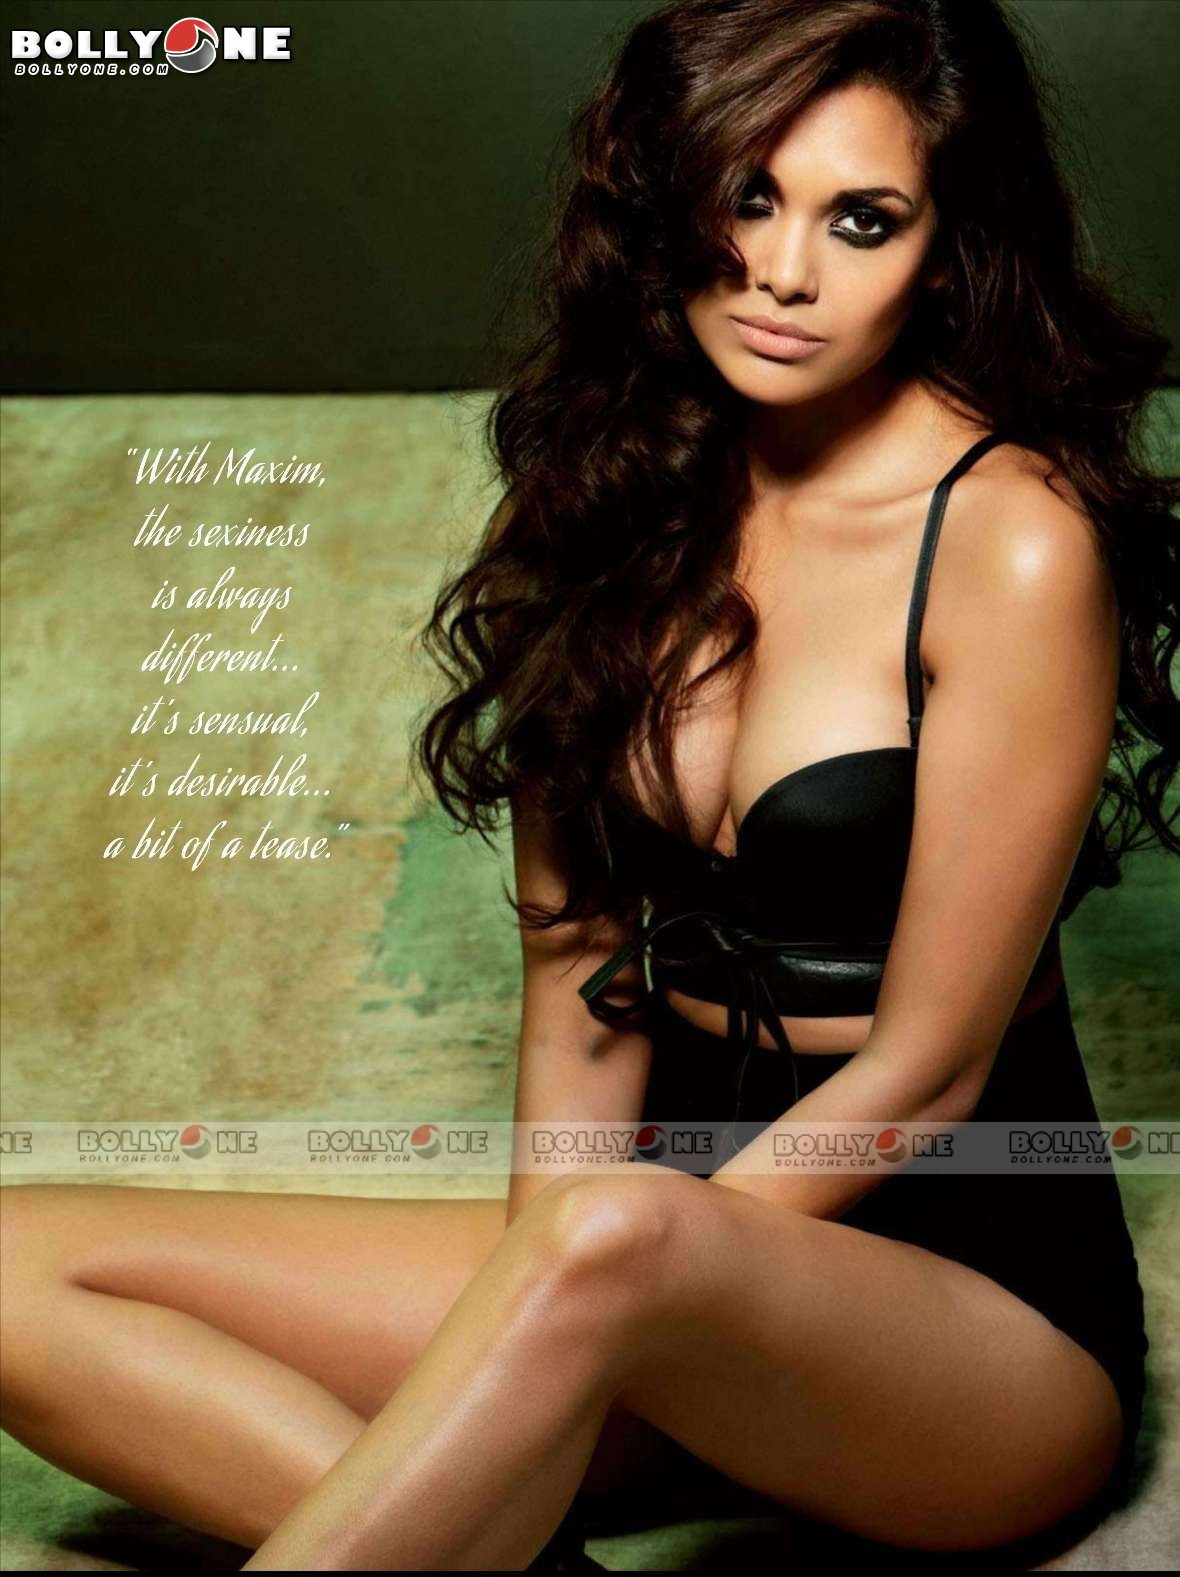 Esha Gupta looking smoking hot in black outfit -  Esha Gupta MAXIM June 2012 HOT PICS (ALL BLACK OUTFIT)